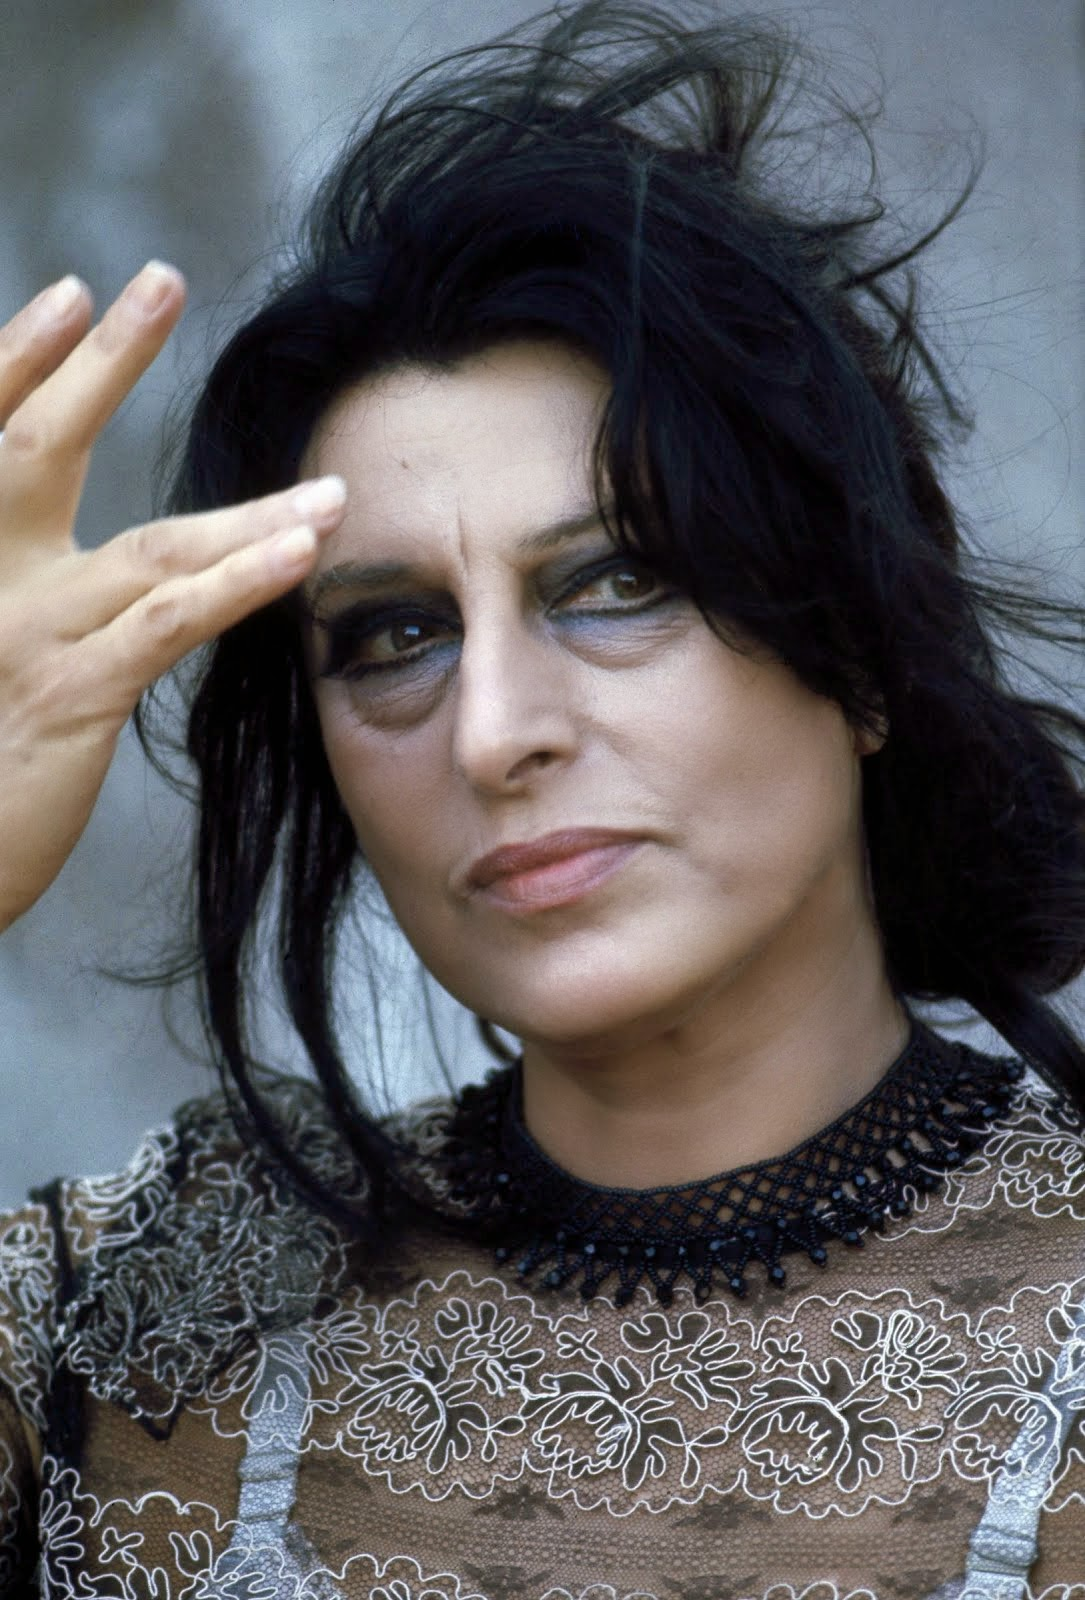 Bien connu Diversity is beautiful: Quoting Anna Magnani VD34